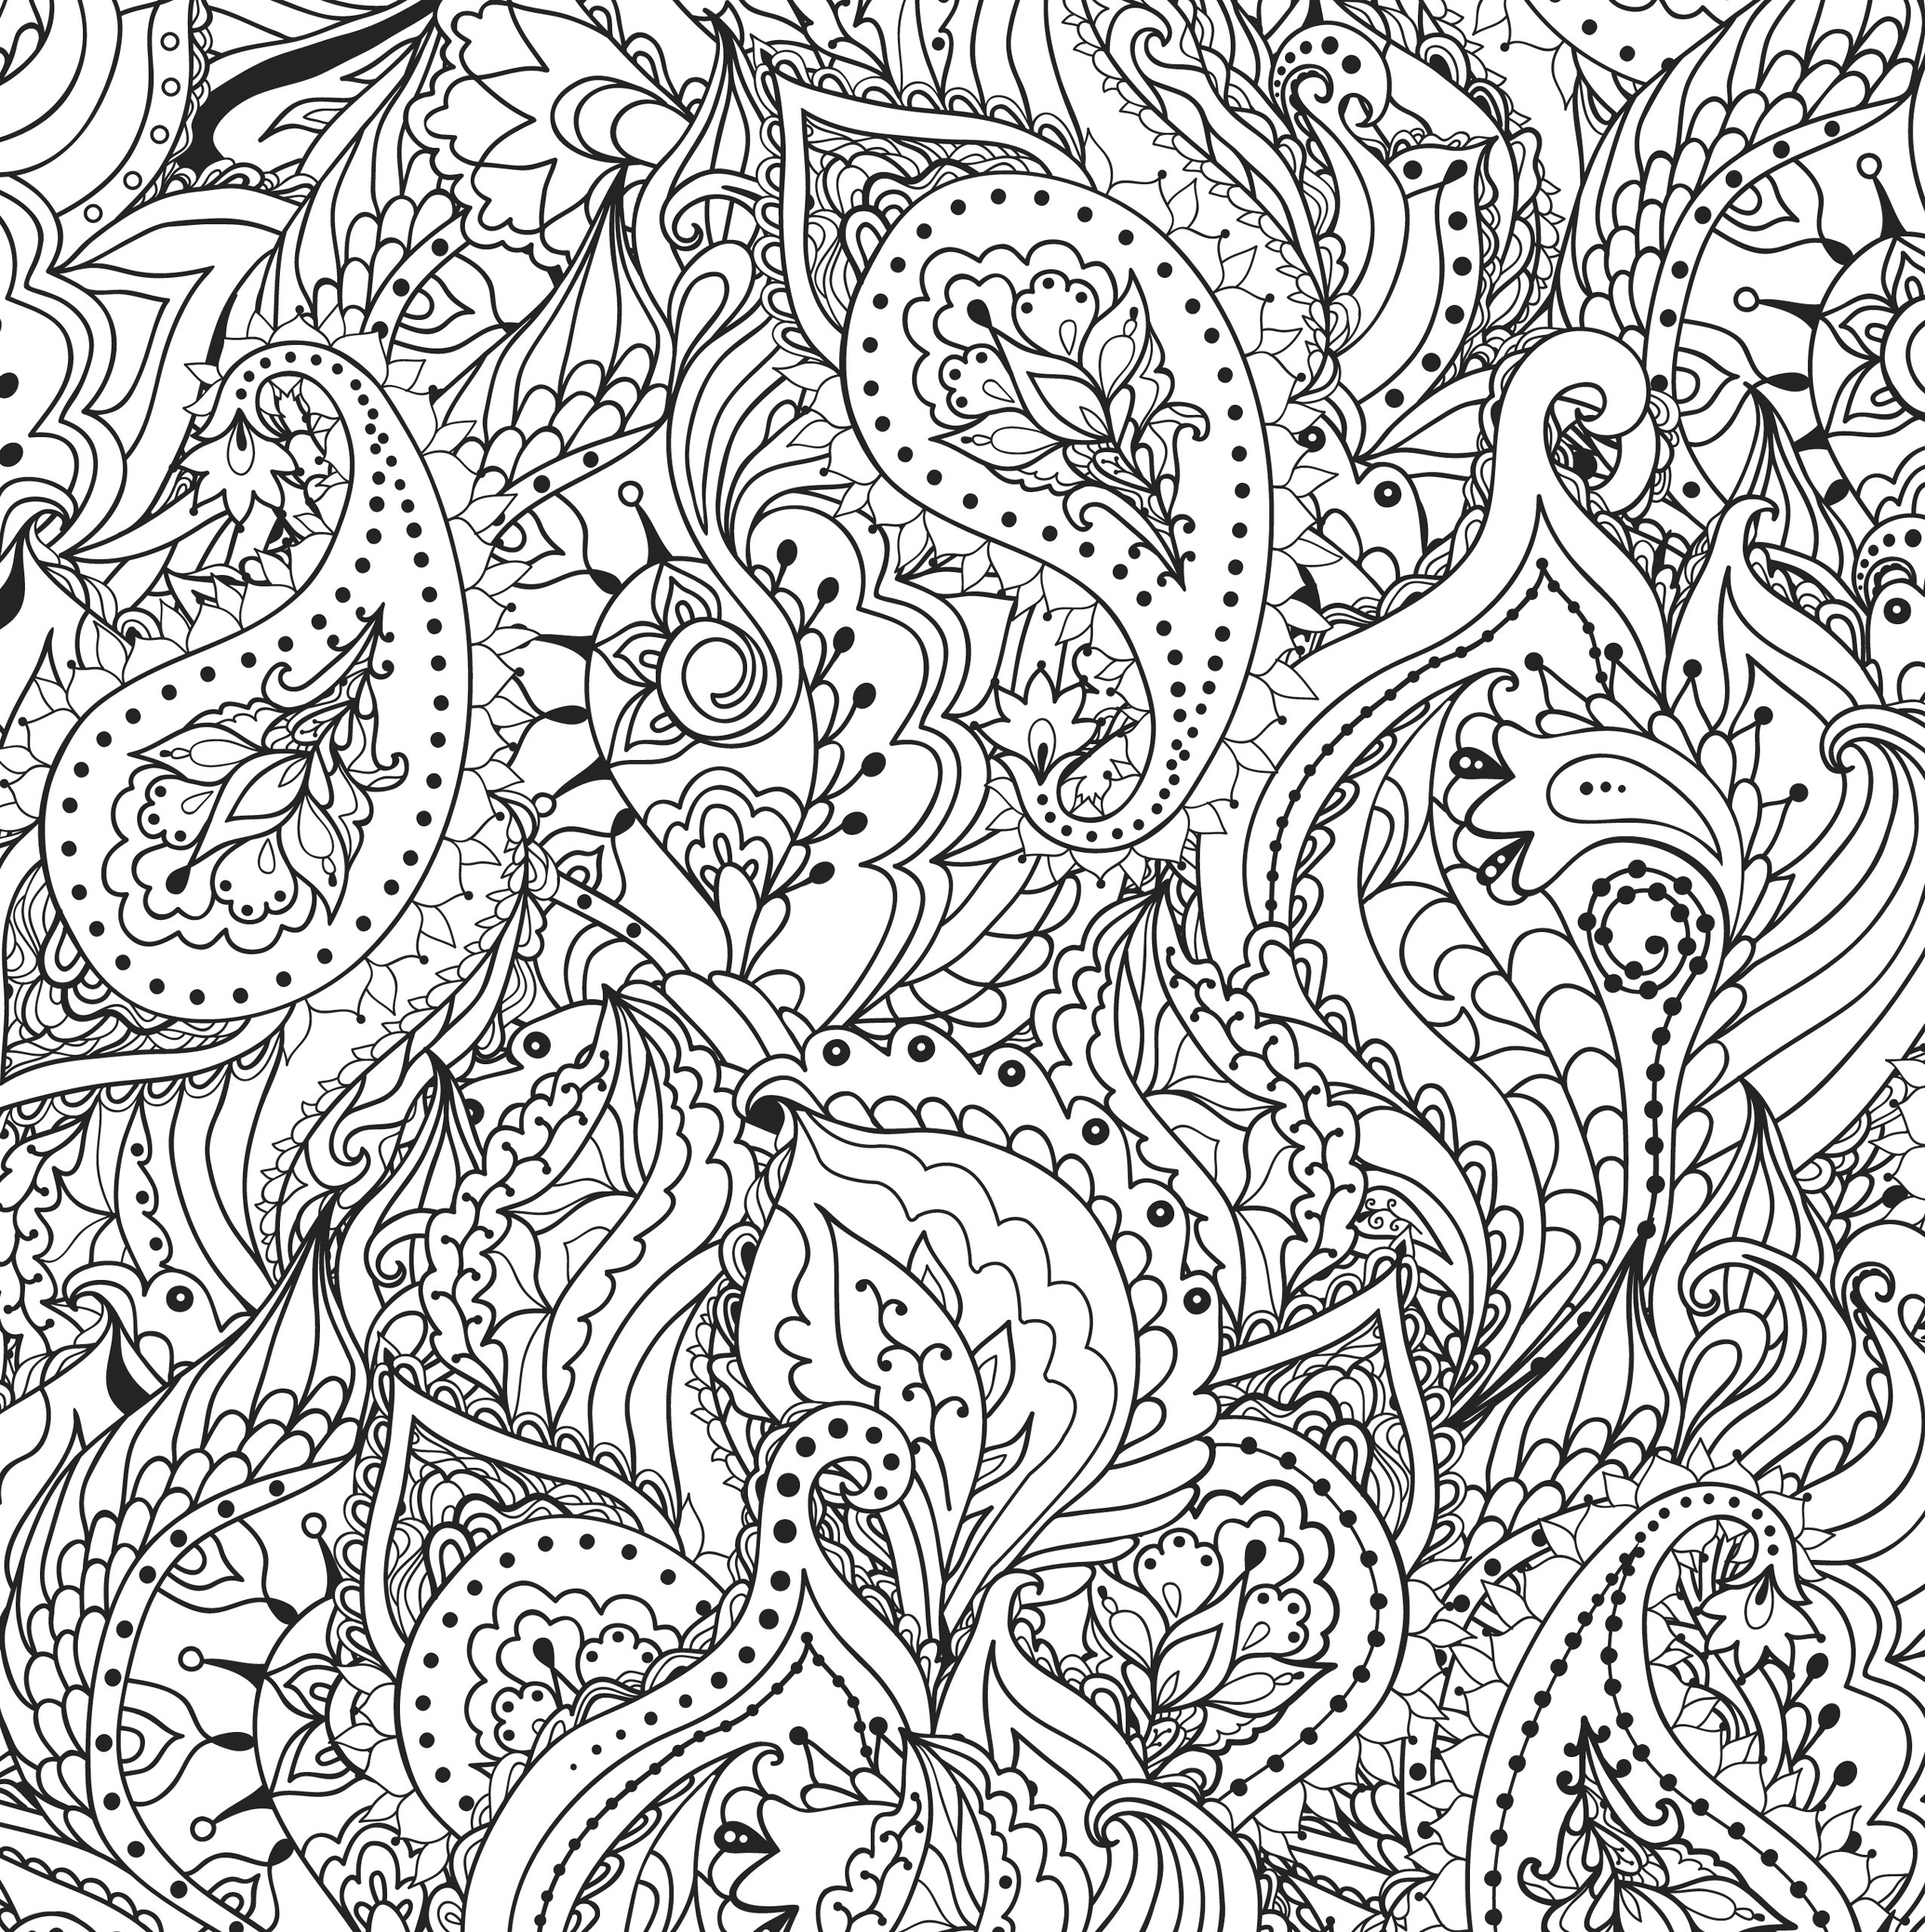 amazoncom peaceful paisleys adult coloring book 31 stress relieving designs studio 9781441320025 peter pauper press books - Adults Coloring Books